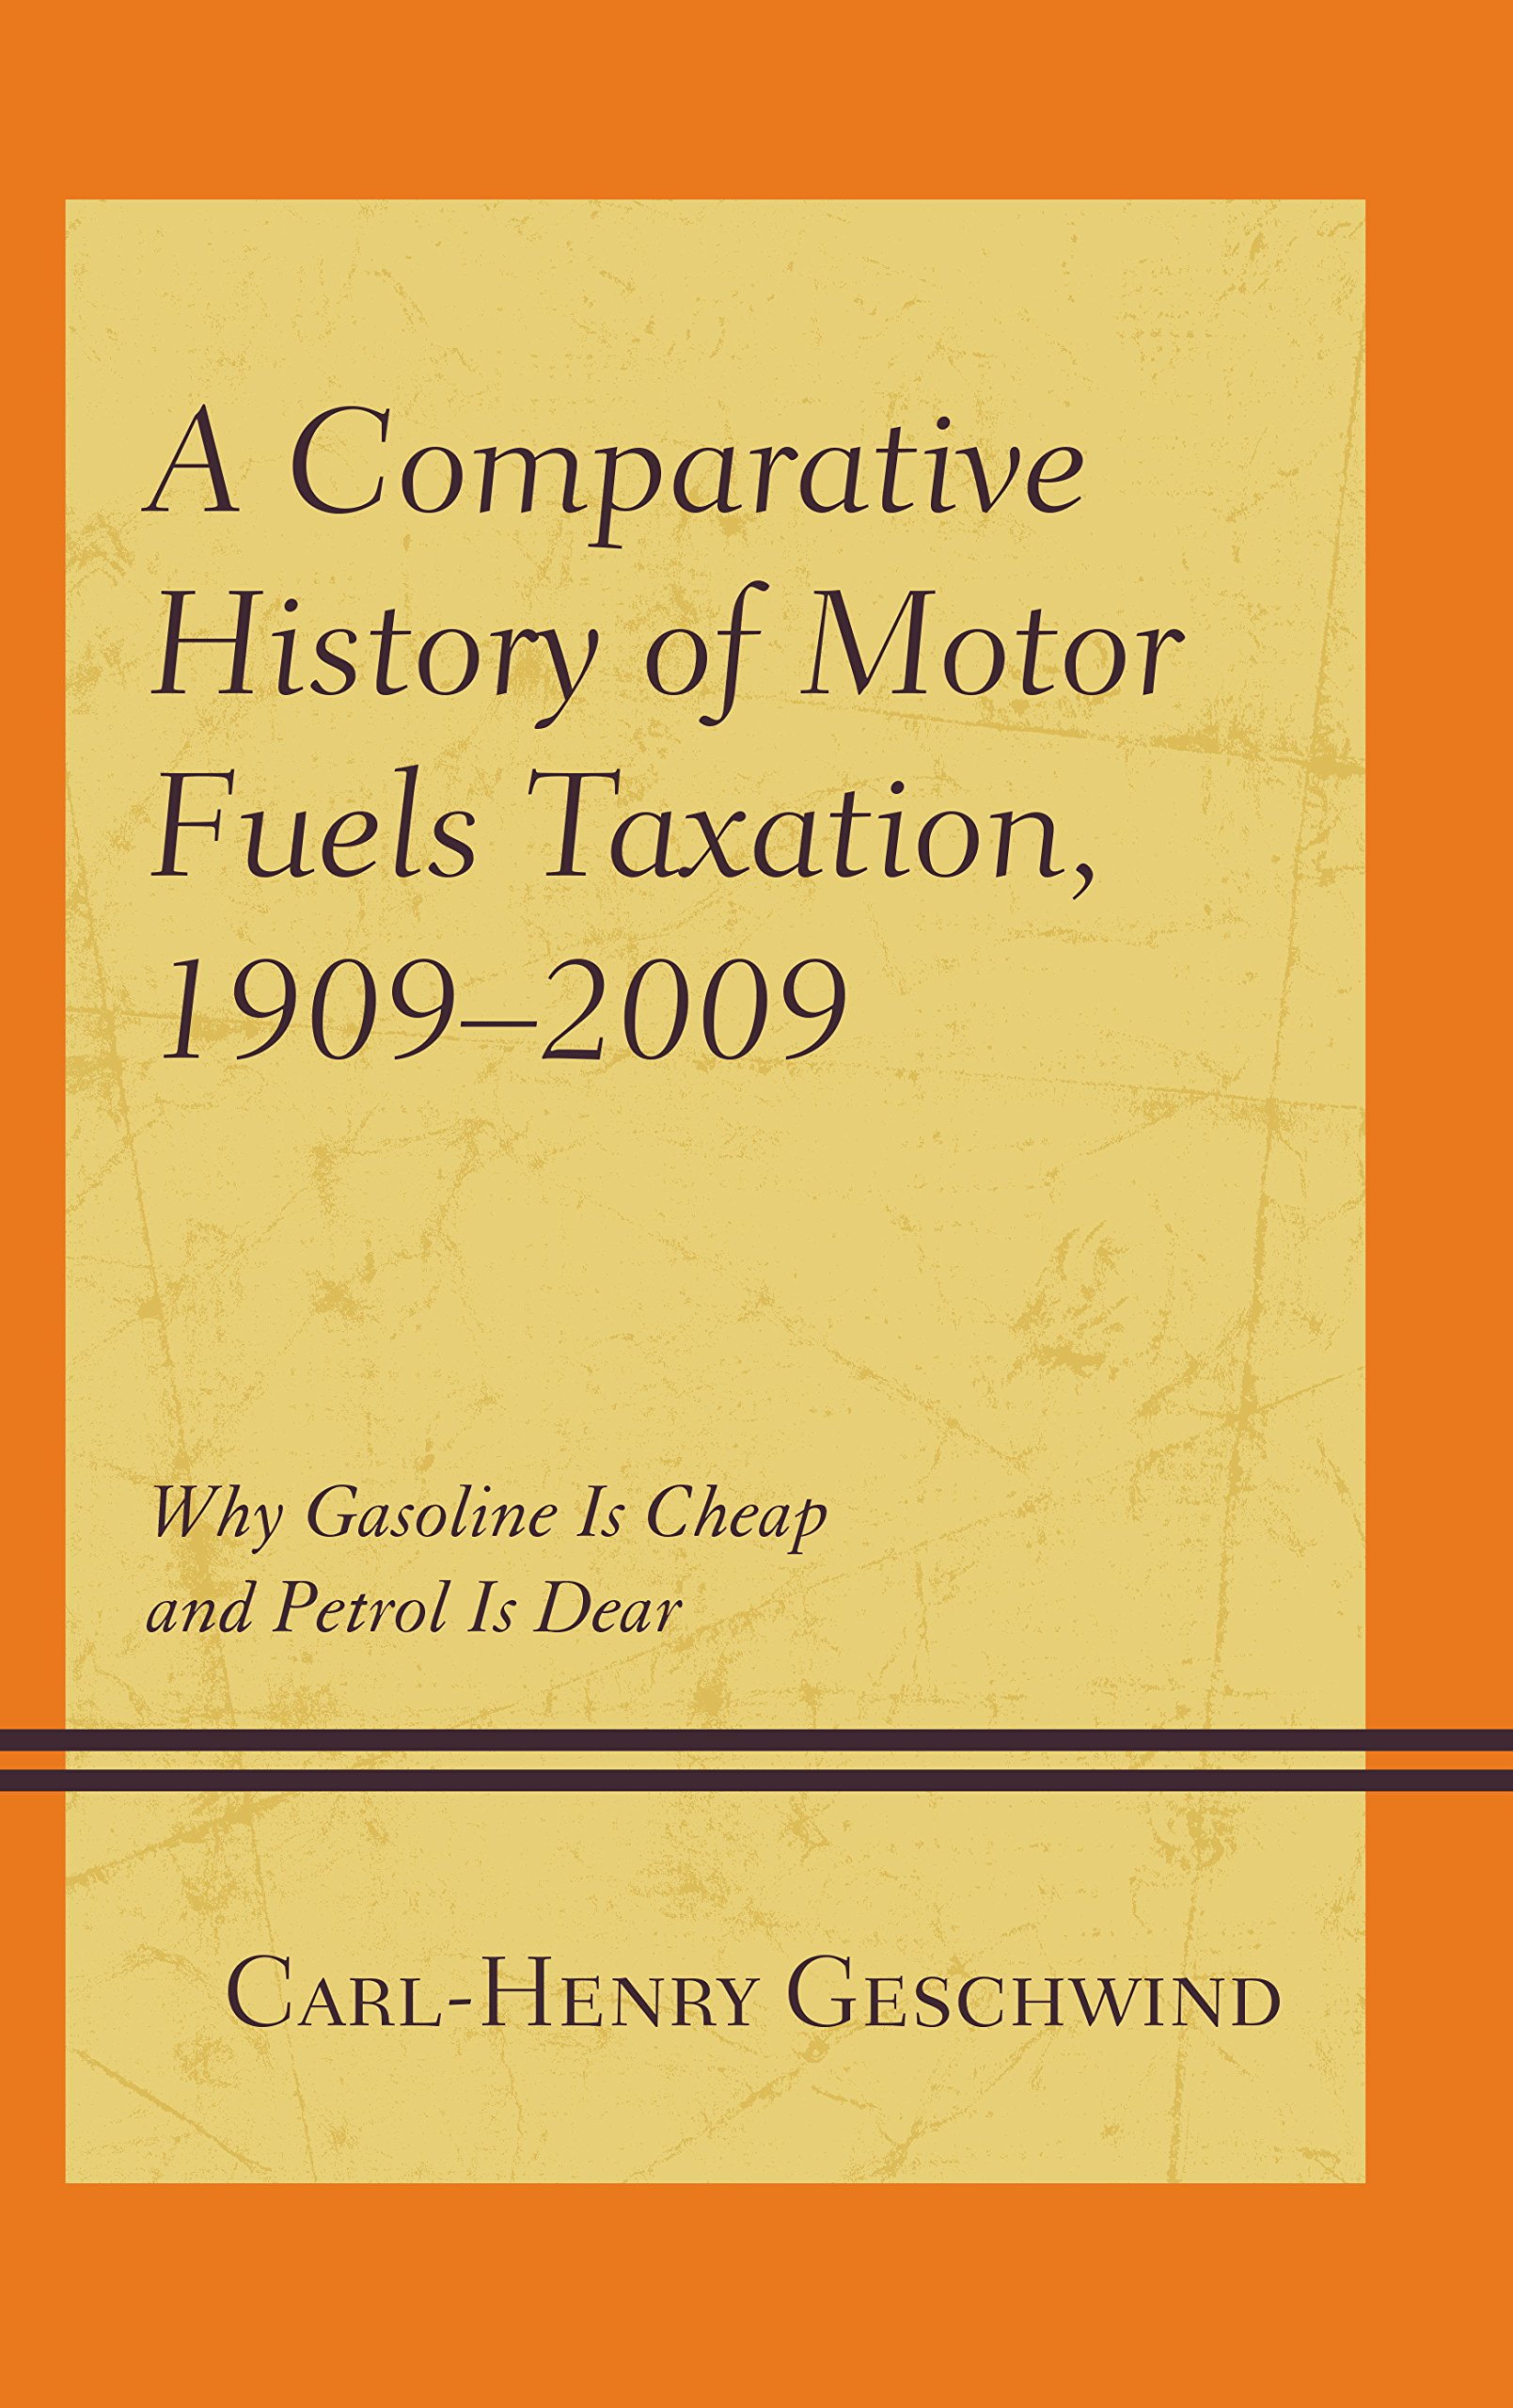 A Comparative History of Motor Fuels Taxation, 1909–2009: Why Gasoline Is Cheap and Petrol Is Dear